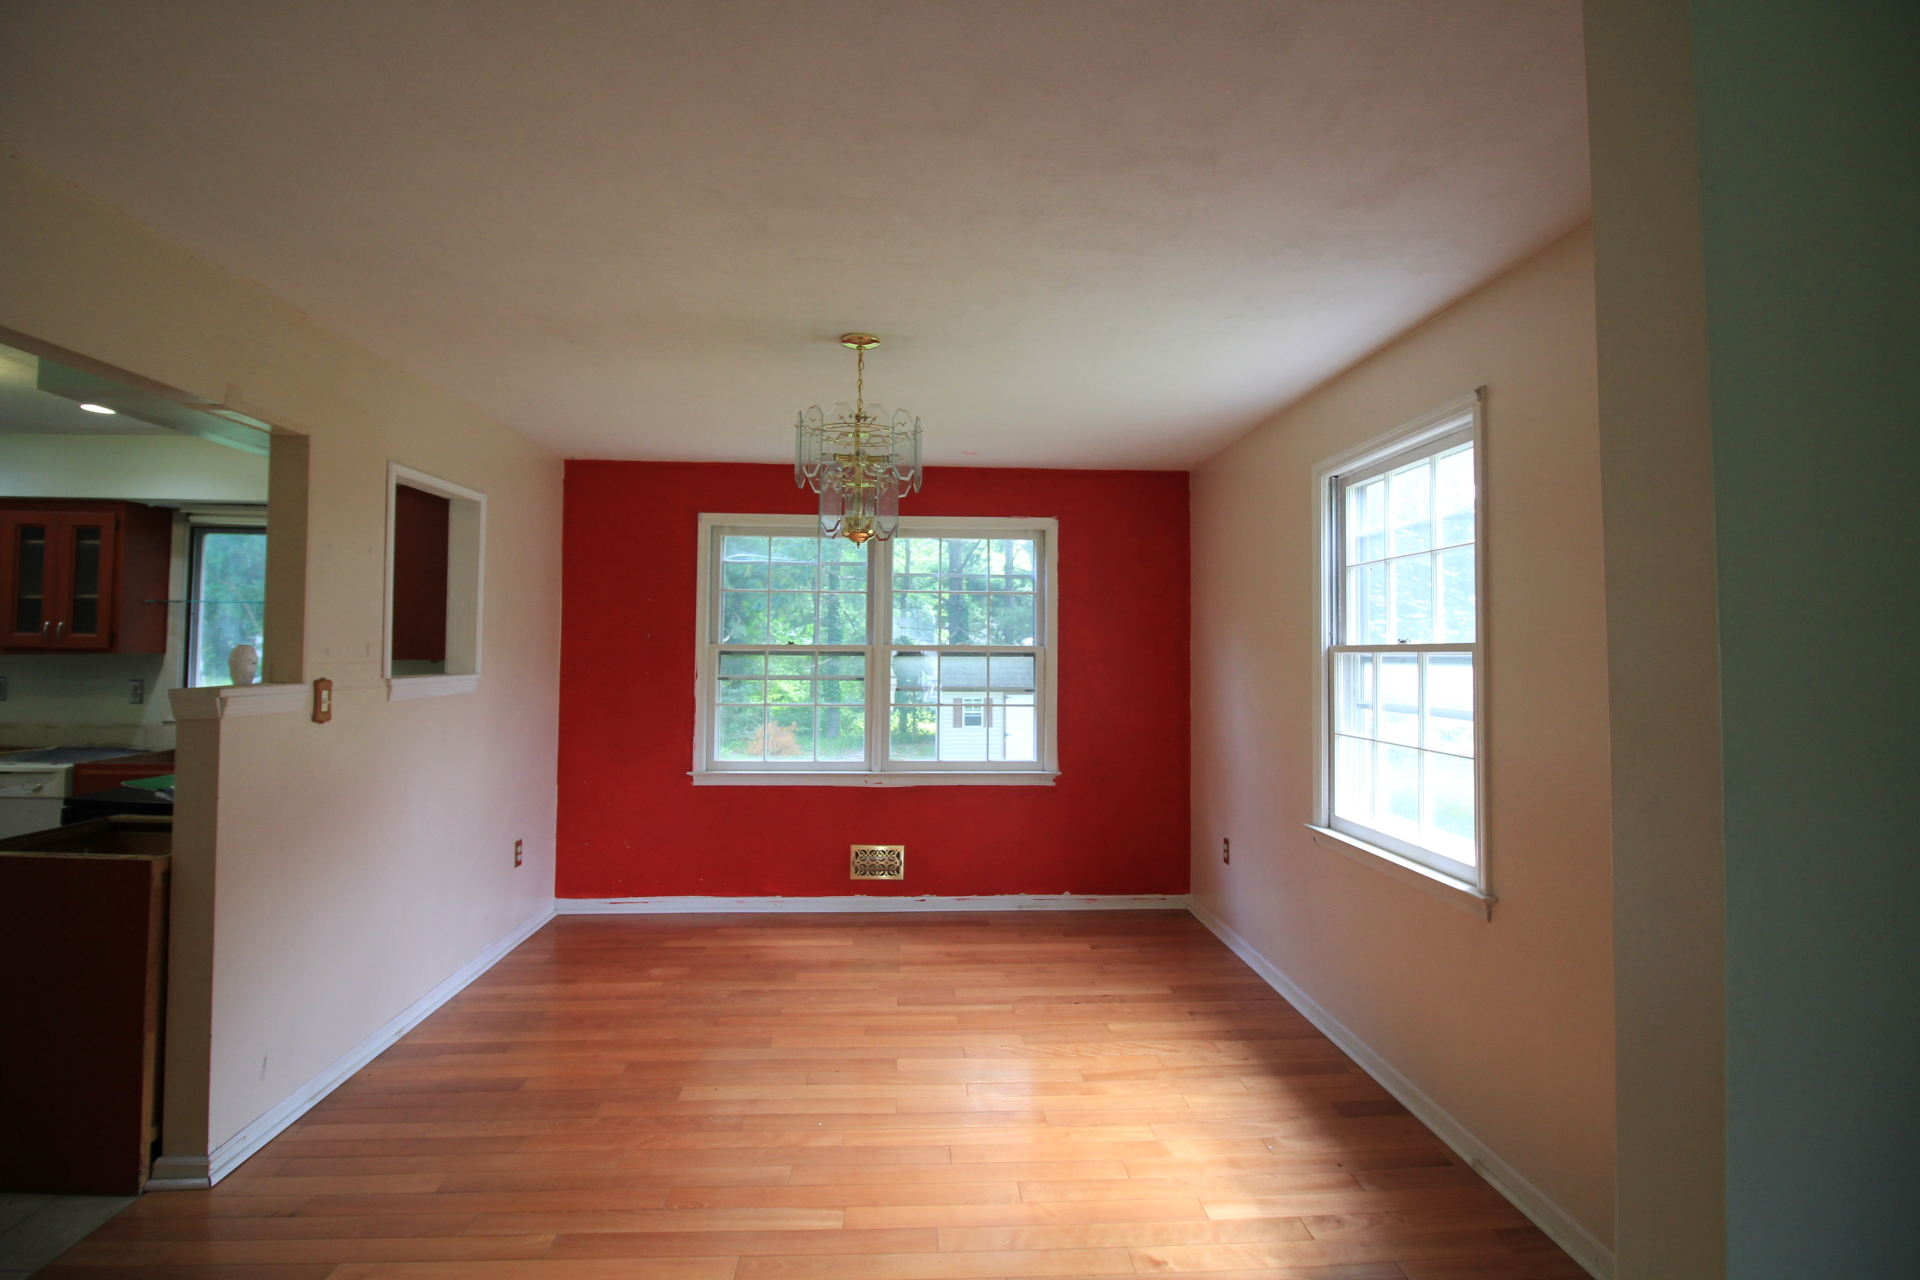 Design & Vacant Staging - W. Trenton, NJ  - 12/17